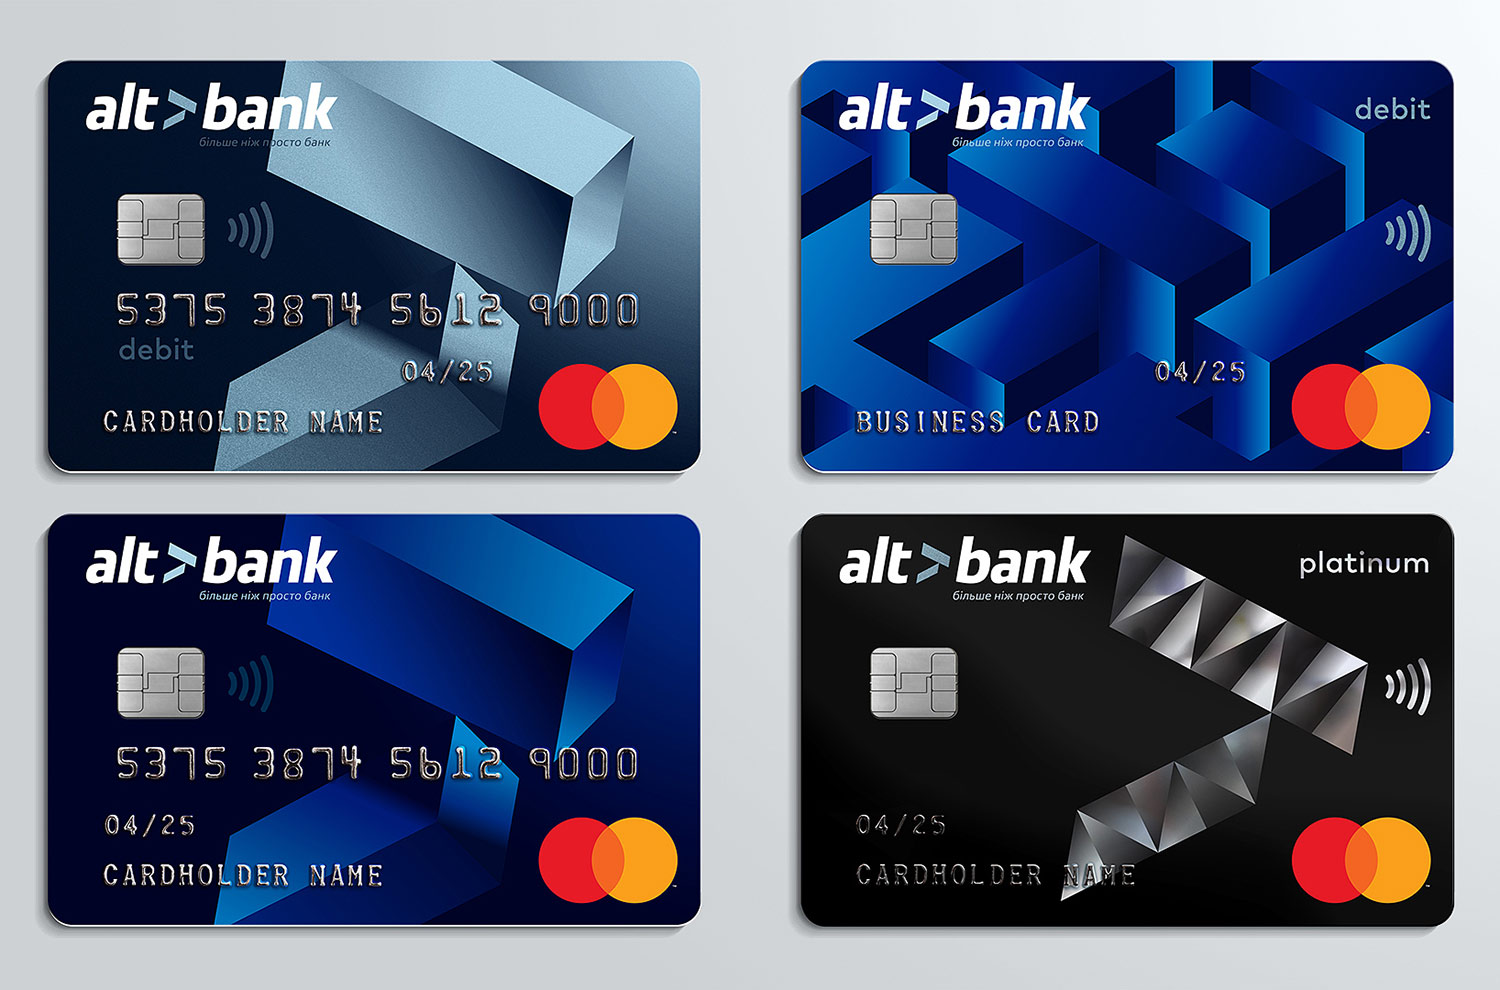 Bank cards design and pre-press. Altbank Mastercard plastic cards.